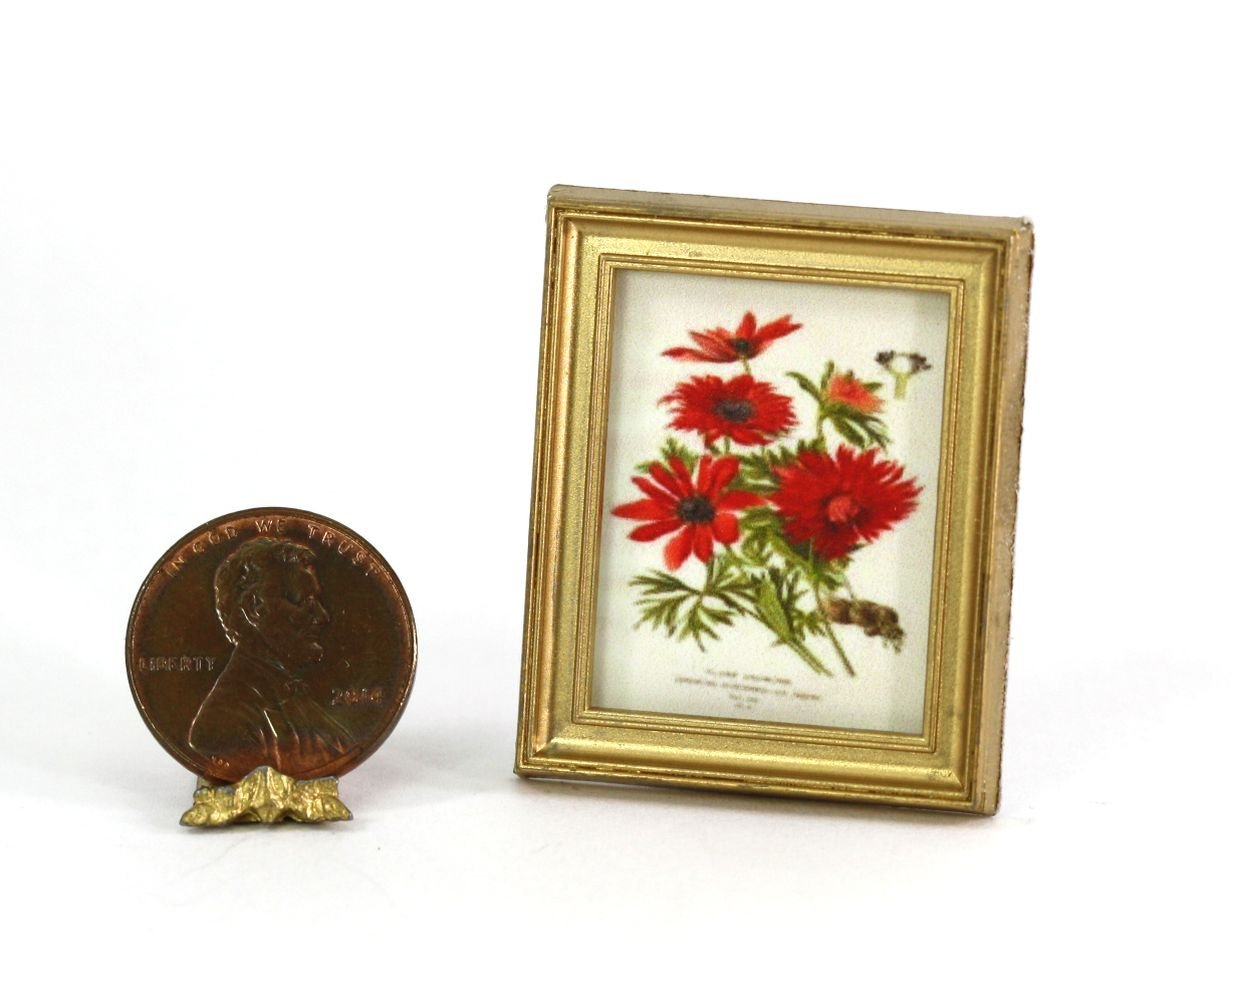 Dollhouse Miniature Gold Framed Picture of a Vintage Botanical Print